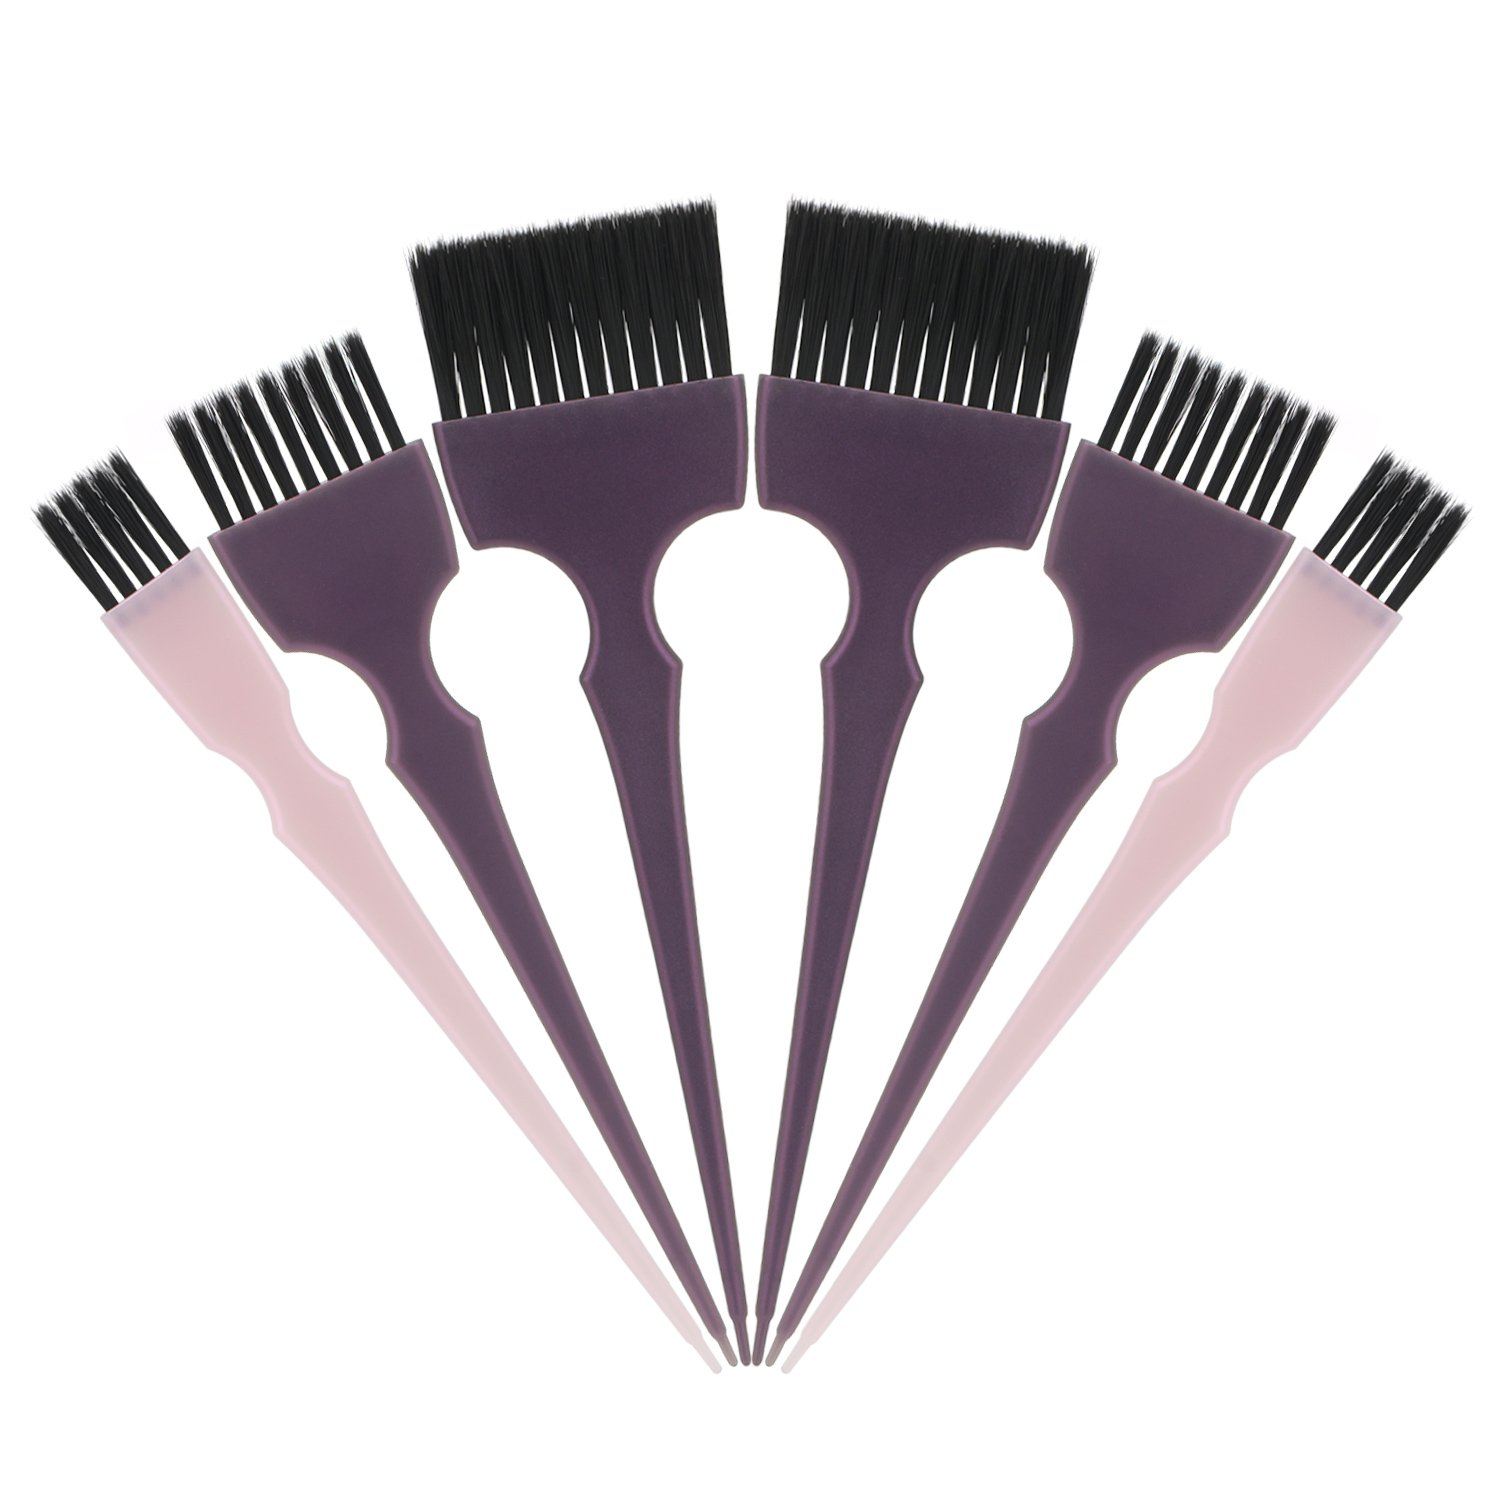 Segbeauty Hair Dye Brush, 6pcs Tint Brush Set Hair Coloring Brushes, Professional Hairdressing Tinting Brush Color Applicator Brush, Hair Bleach Styling Brush for Hair Dyeing Balayage